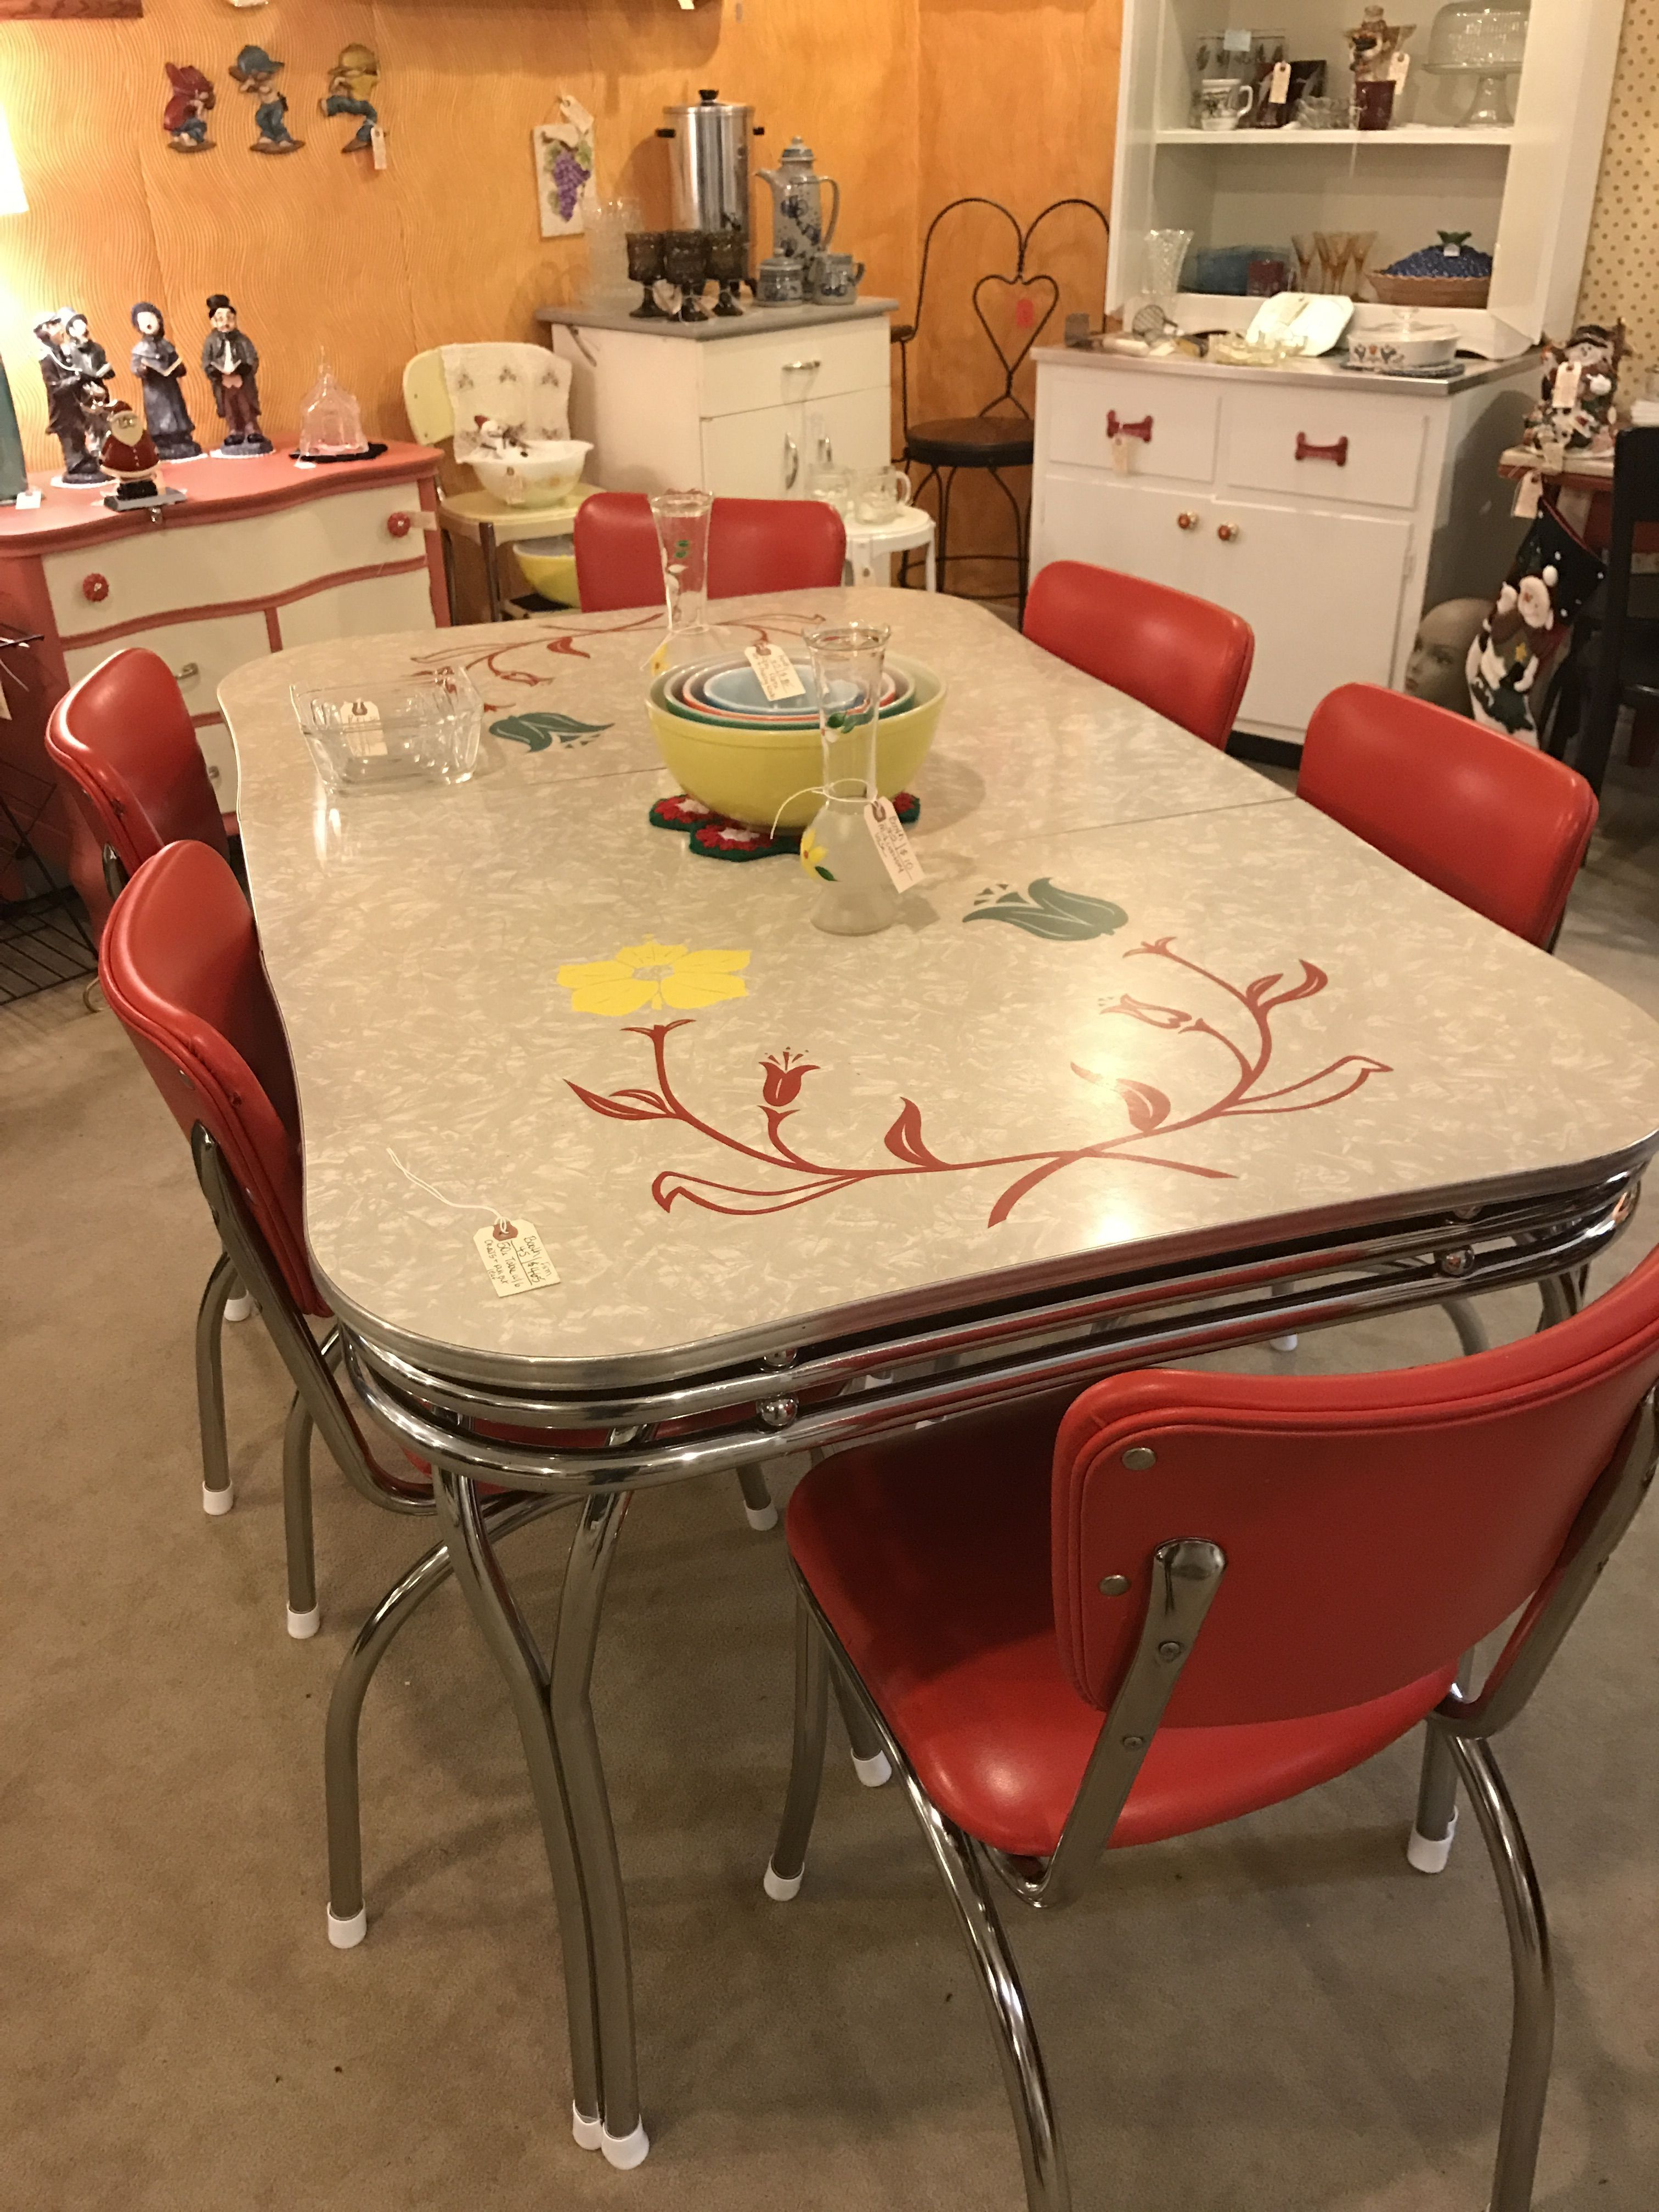 Beautiful Vintage Formica Table Formica Tables In 2019 Retro Retro Kitchen Tables Retro Dining Table Vintage Kitchen Table Vintage style kitchen tables